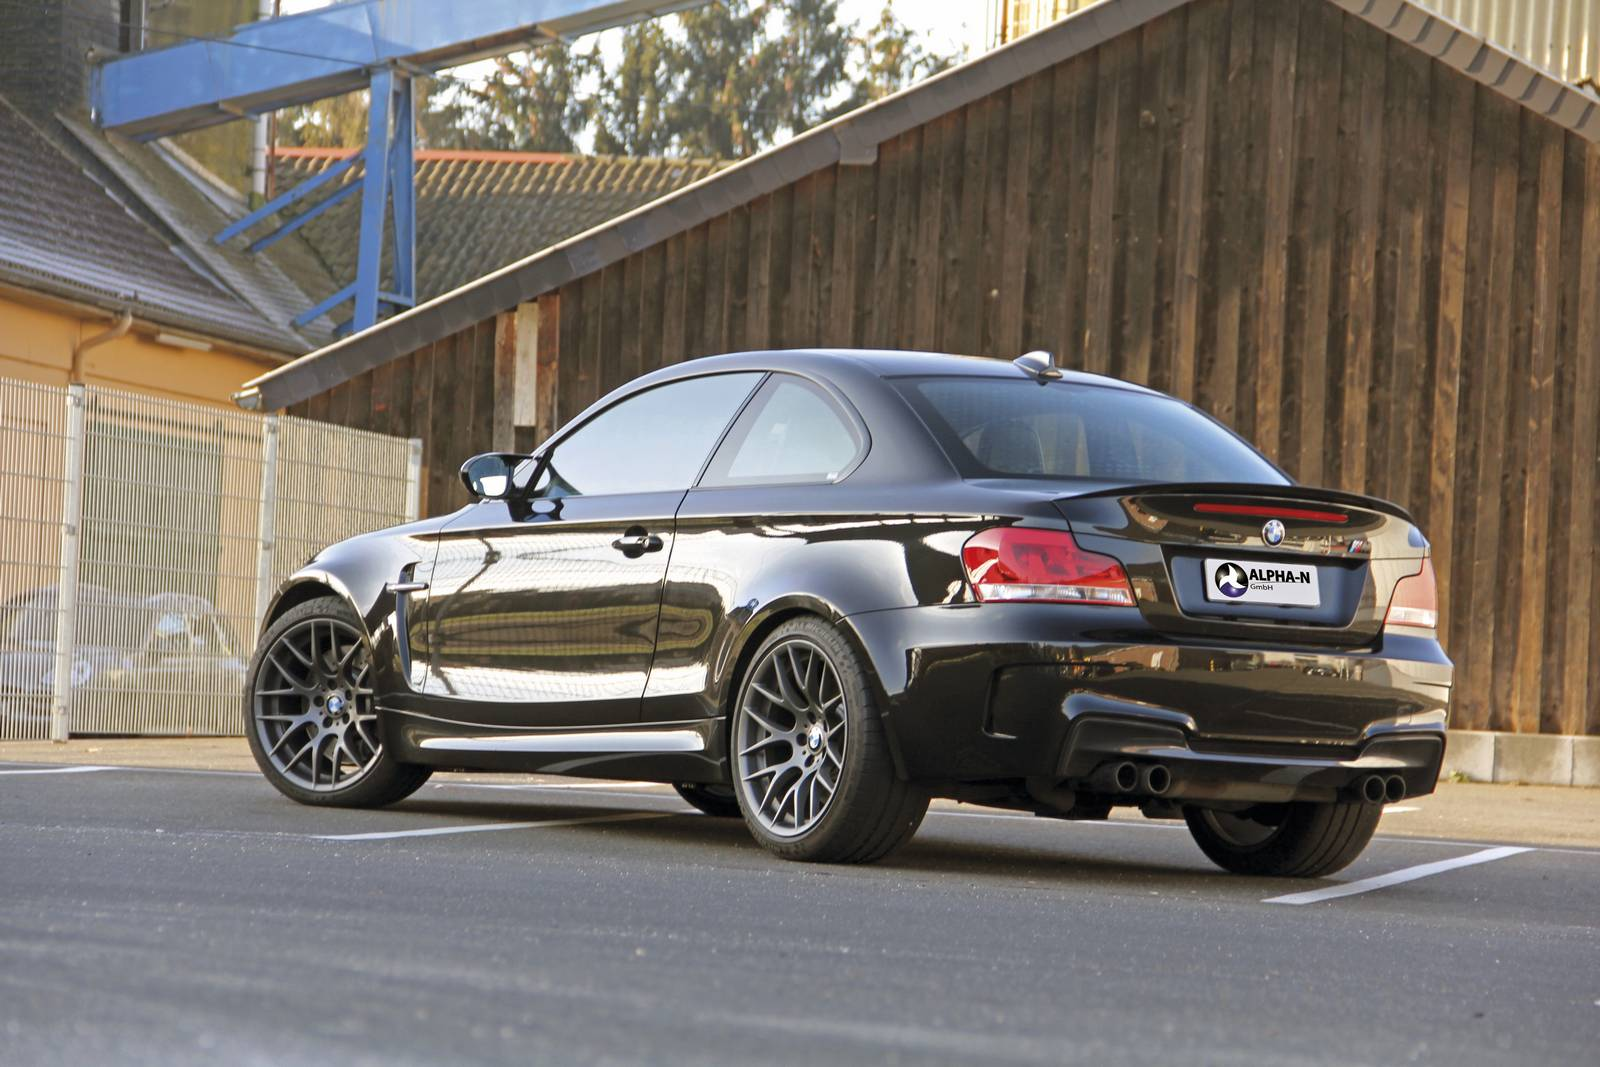 official 564hp bmw 1 series m coupe by alpha n performance gtspirit. Black Bedroom Furniture Sets. Home Design Ideas